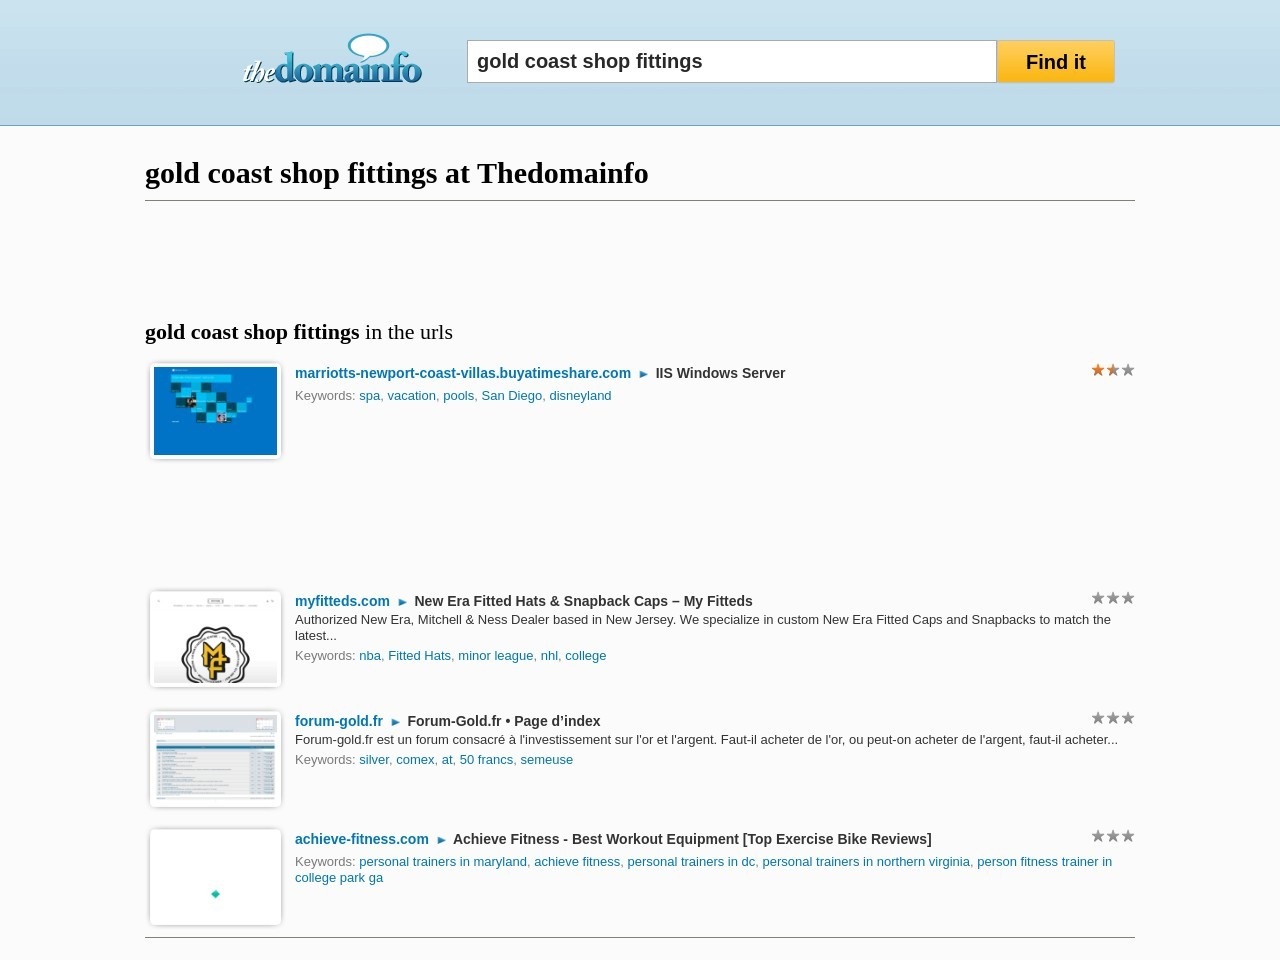 Gold coast shop fittings websites and posts on gold coast shop…